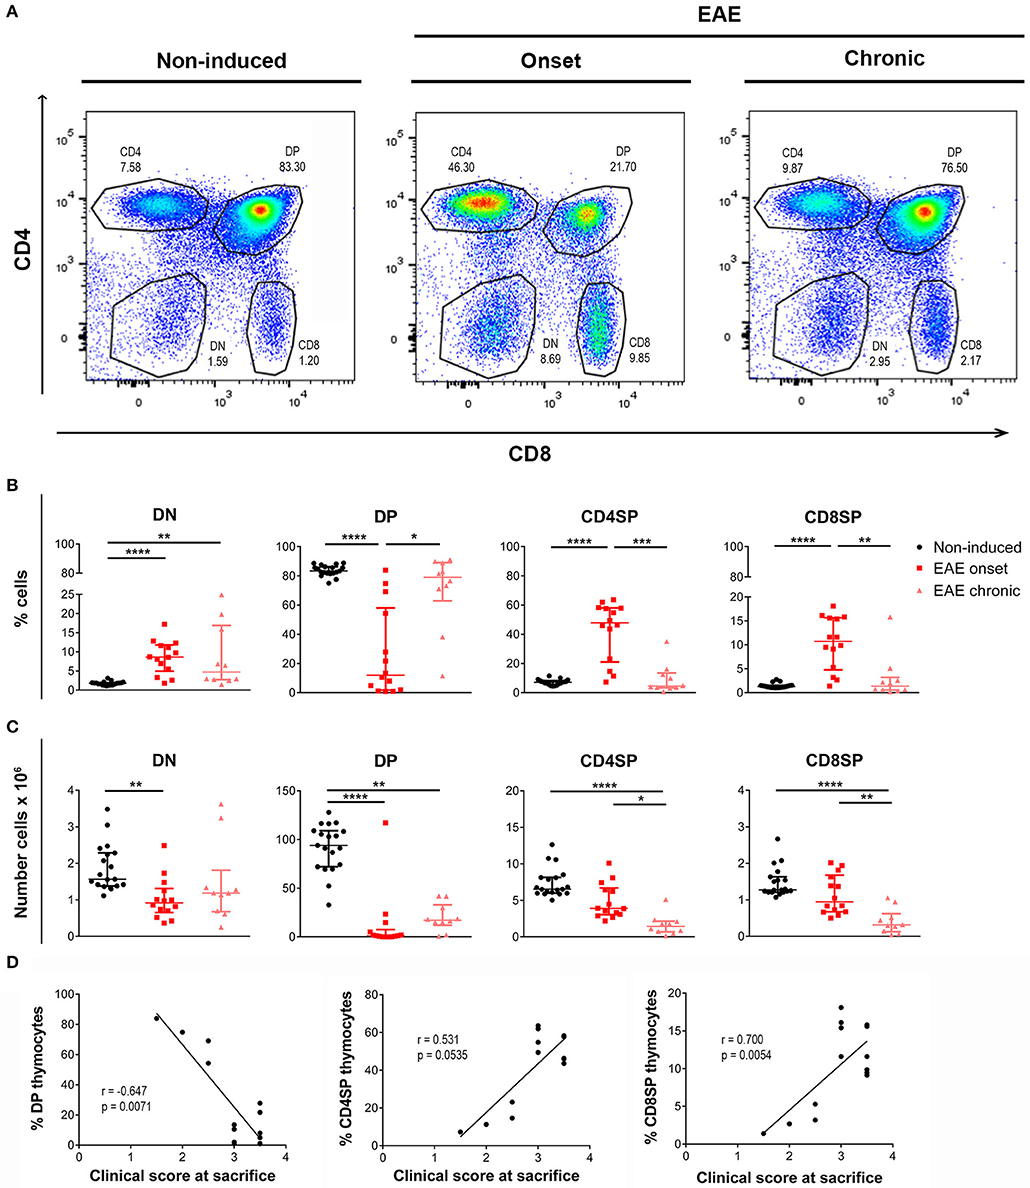 Frontiers | Immune Thymic Profile of the MOG-Induced